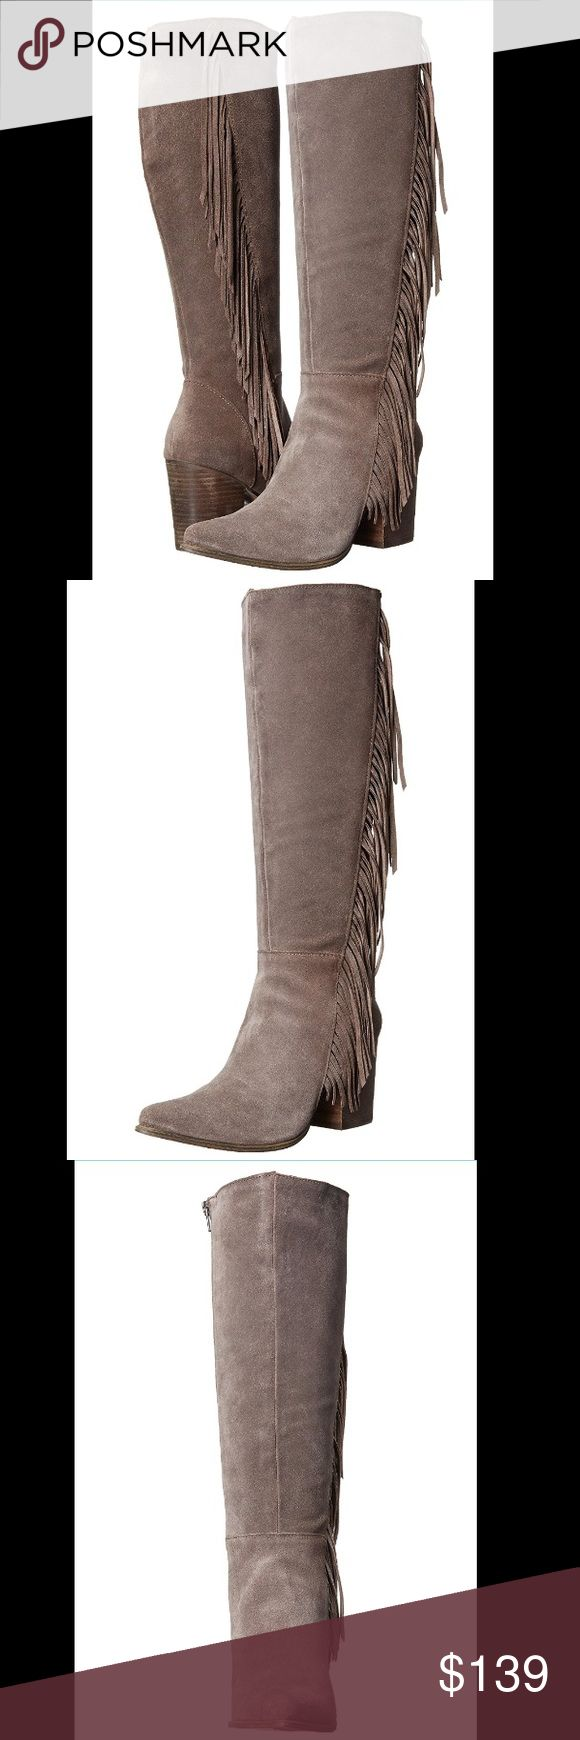 "Steve Madden fringe taupe suede boots These Steve Madden boots will meet all your style needs this season! Suede upper, side- zip closure, pointed toe silhouette, fringe detailing along shaft, fabric lining, man-made footbed, stacked block heel, man-made sole. Heel approx 2"", platform 1/4"". Shaft 16"". New with original packaging. Steve Madden Shoes Heeled Boots"